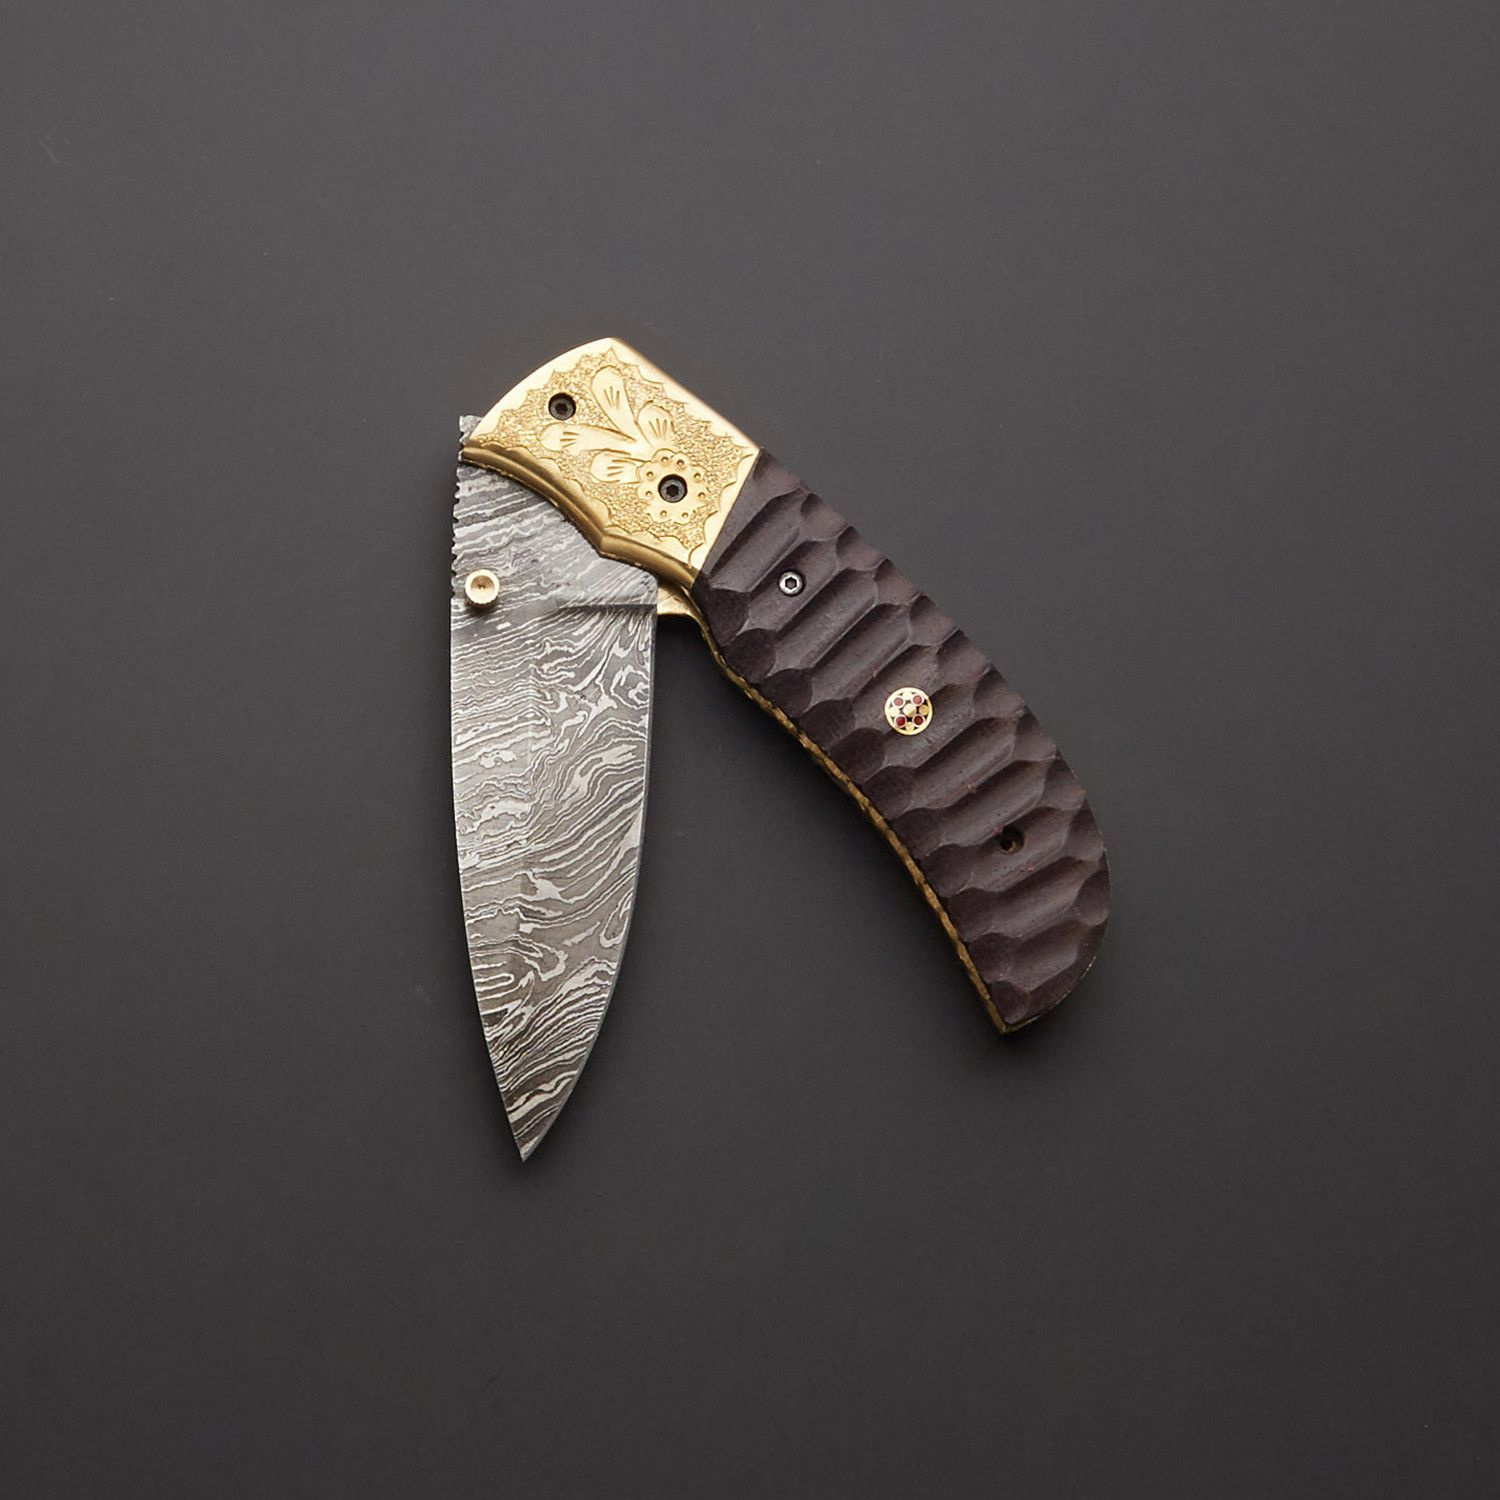 CUSTOM MADE DAMASCUS STEEL FOLDING/POCKET KNIFE + POUCH